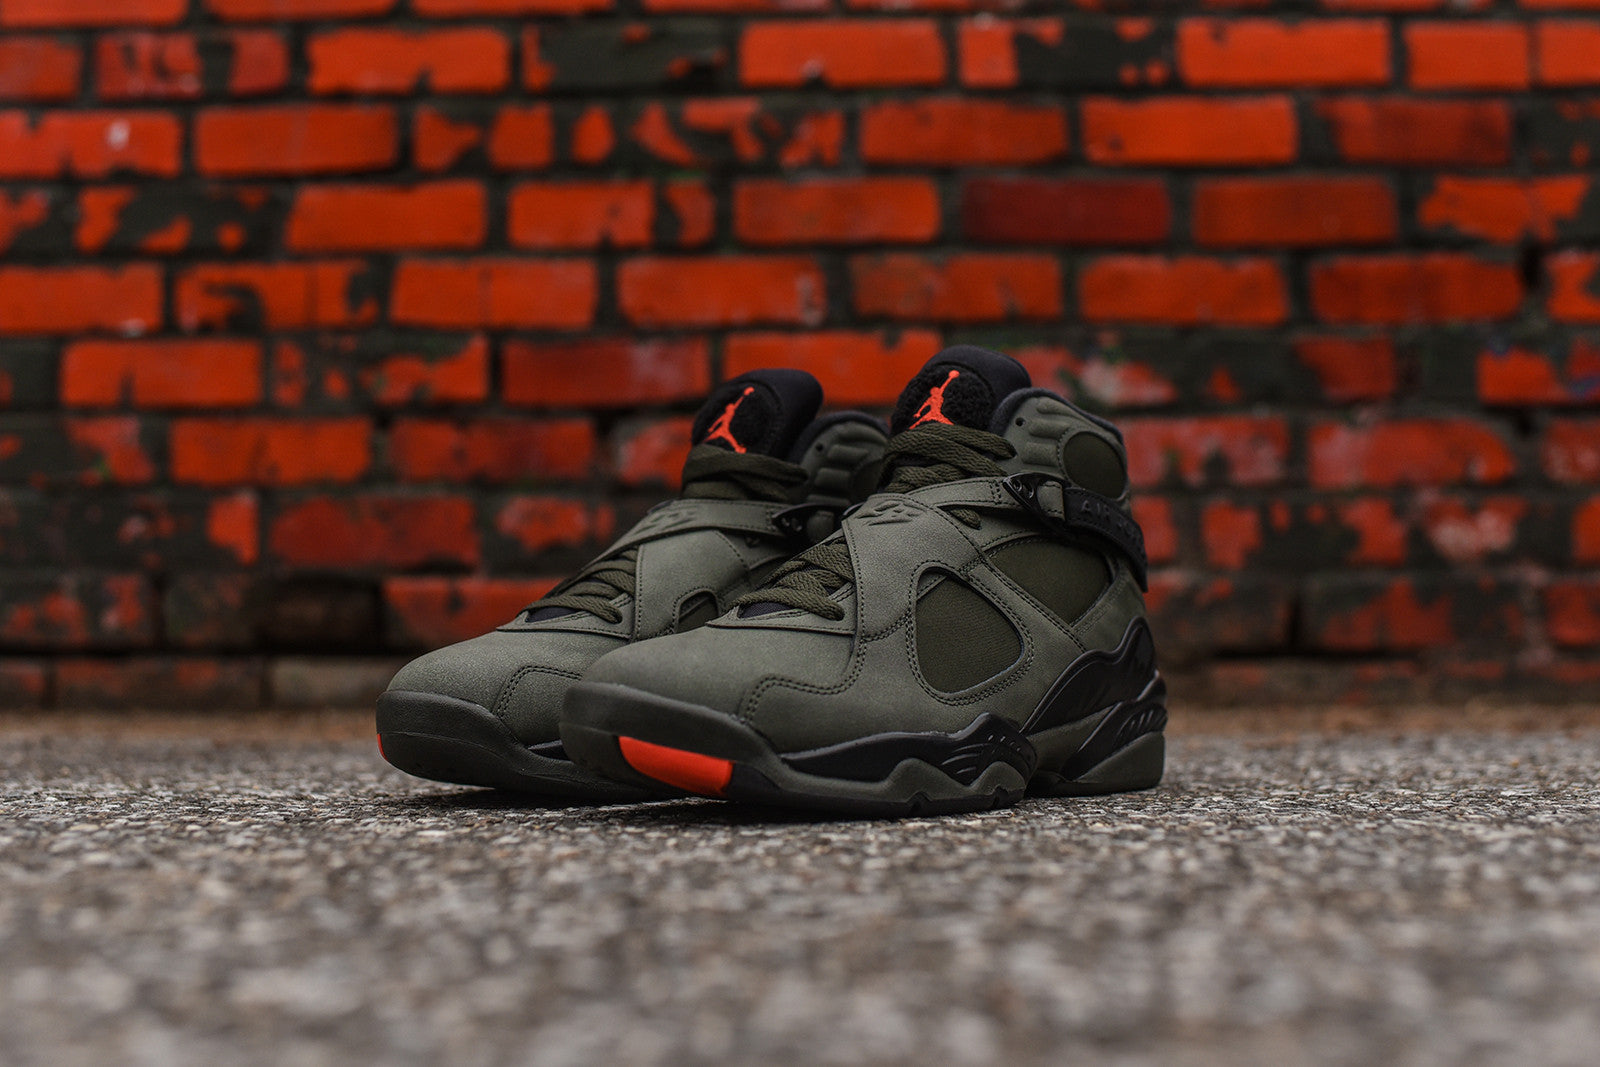 Nike Air Jordan 8 Retro - Sequoia / Max Orange / Black